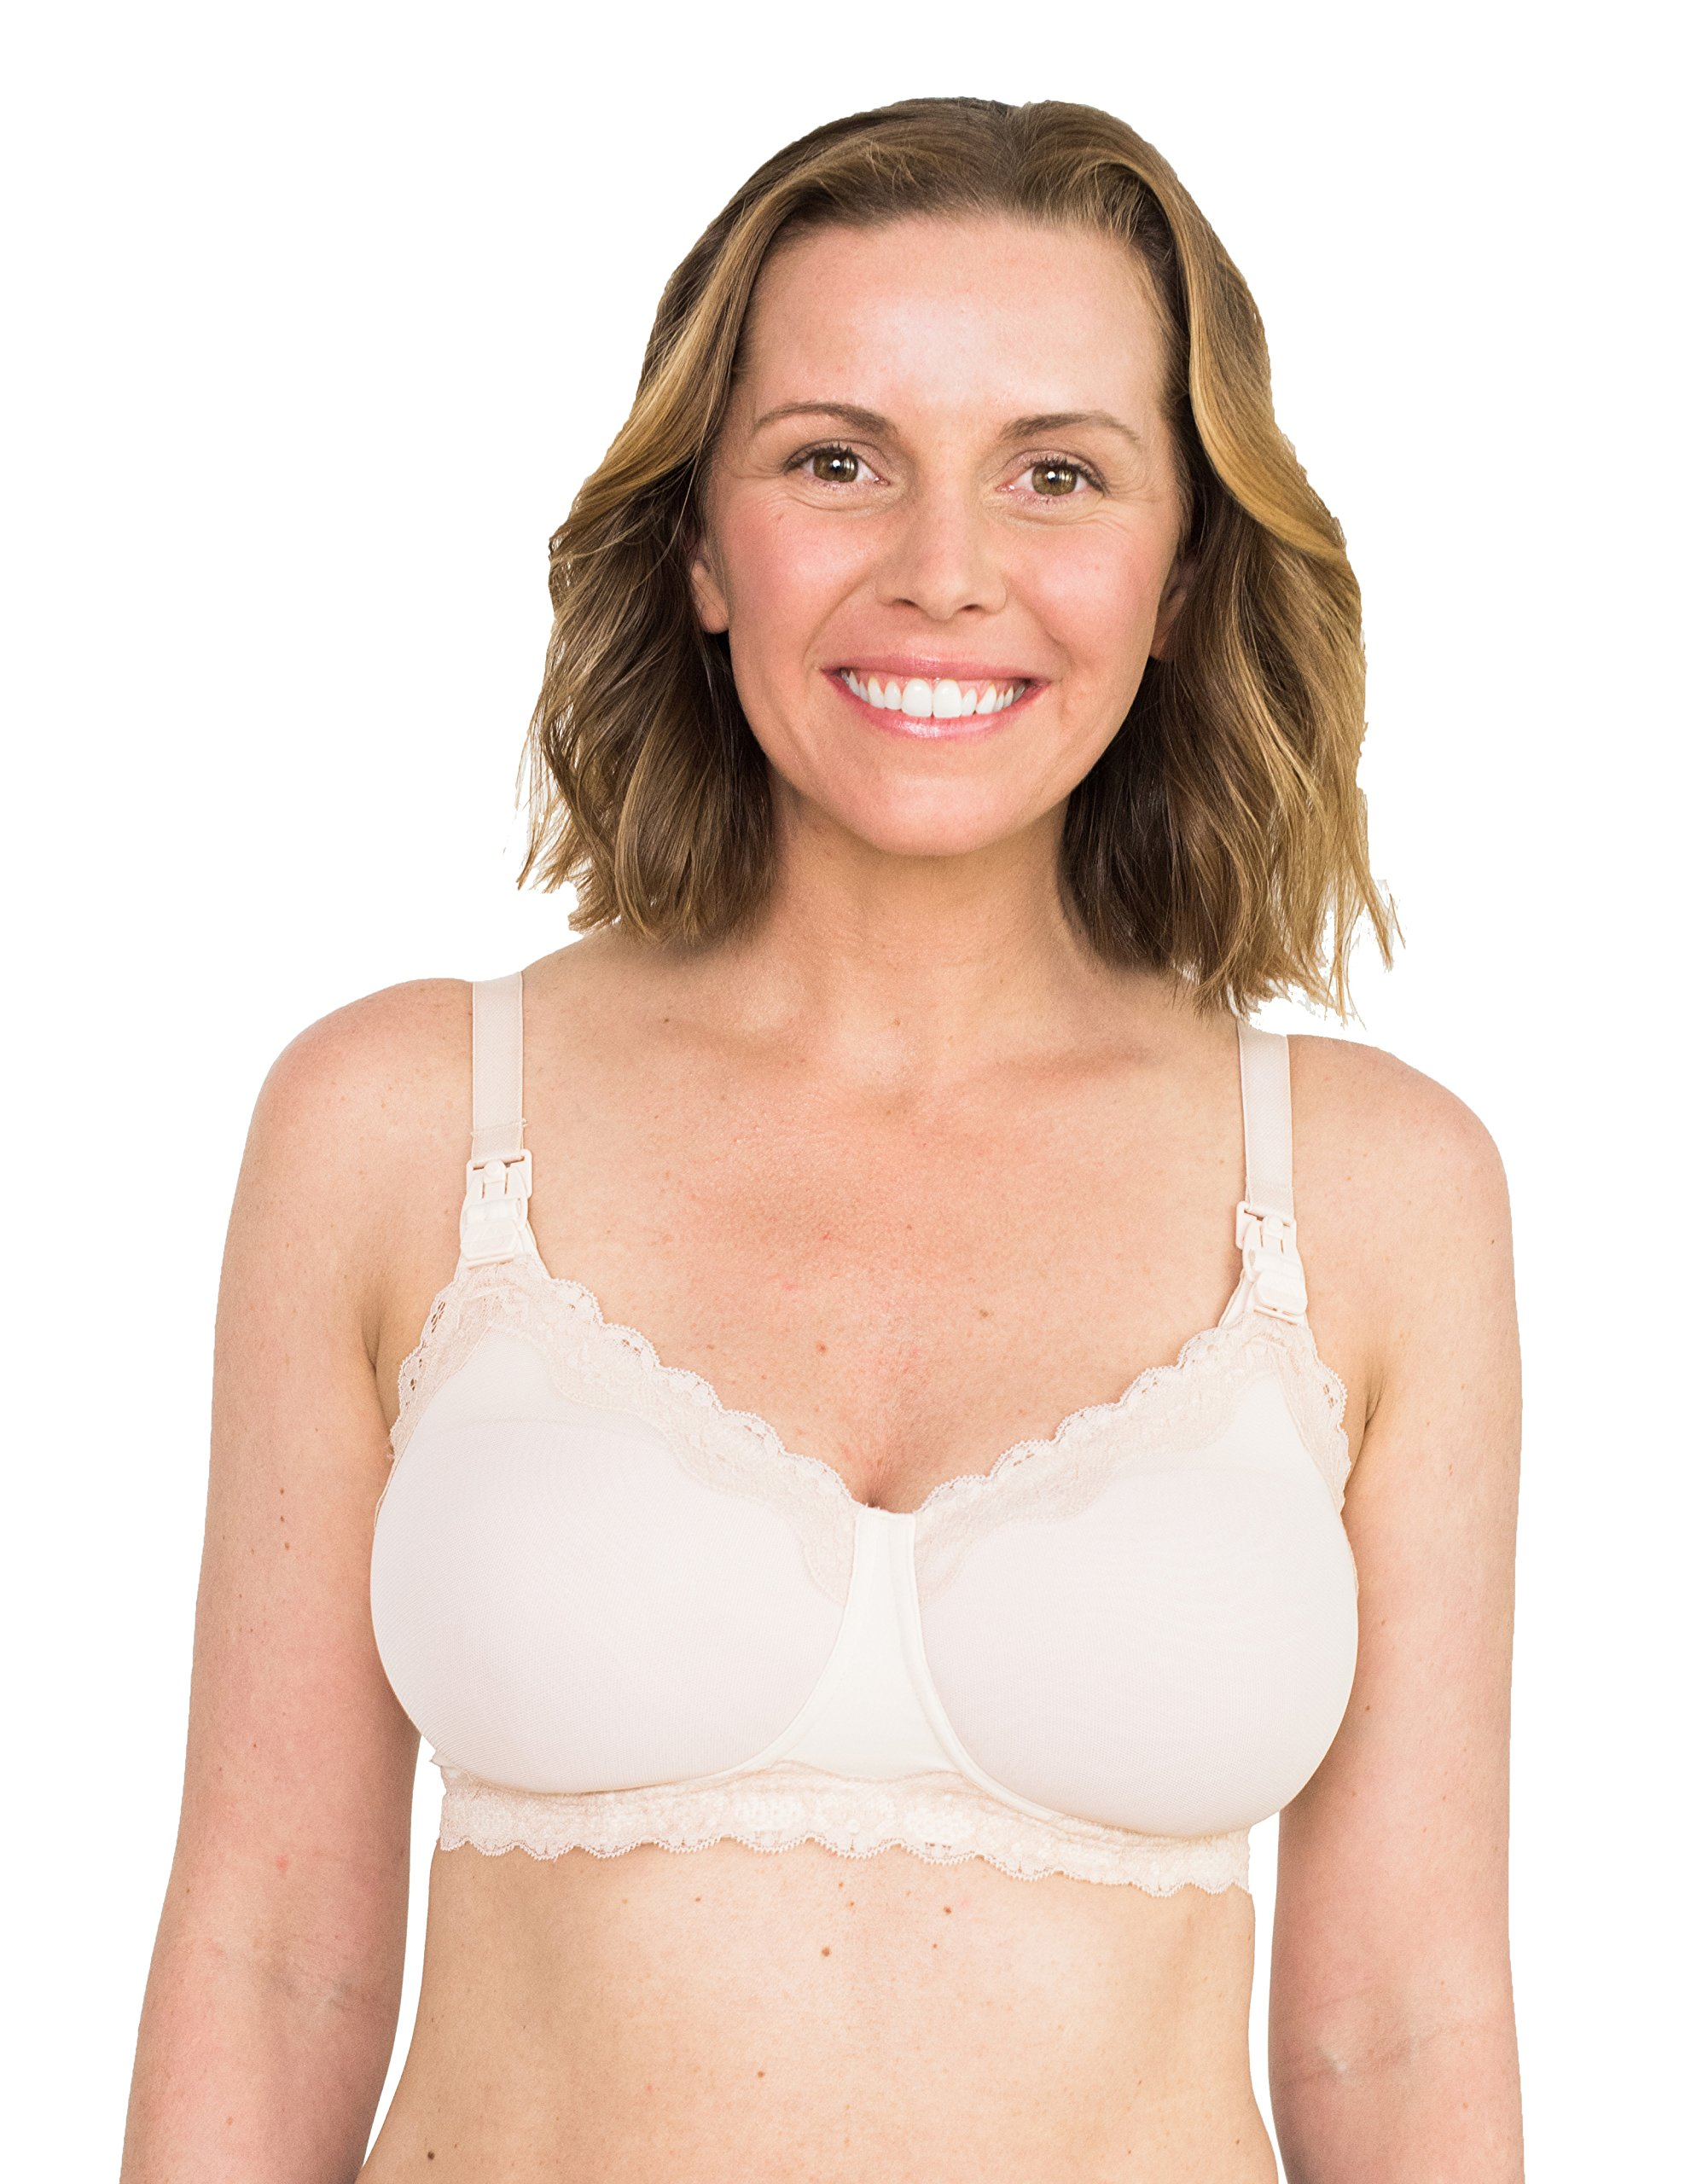 Simple Wishes SuperMom All-in-One Nursing and Pumping Bra, Patent Pending, Blush, 36DD